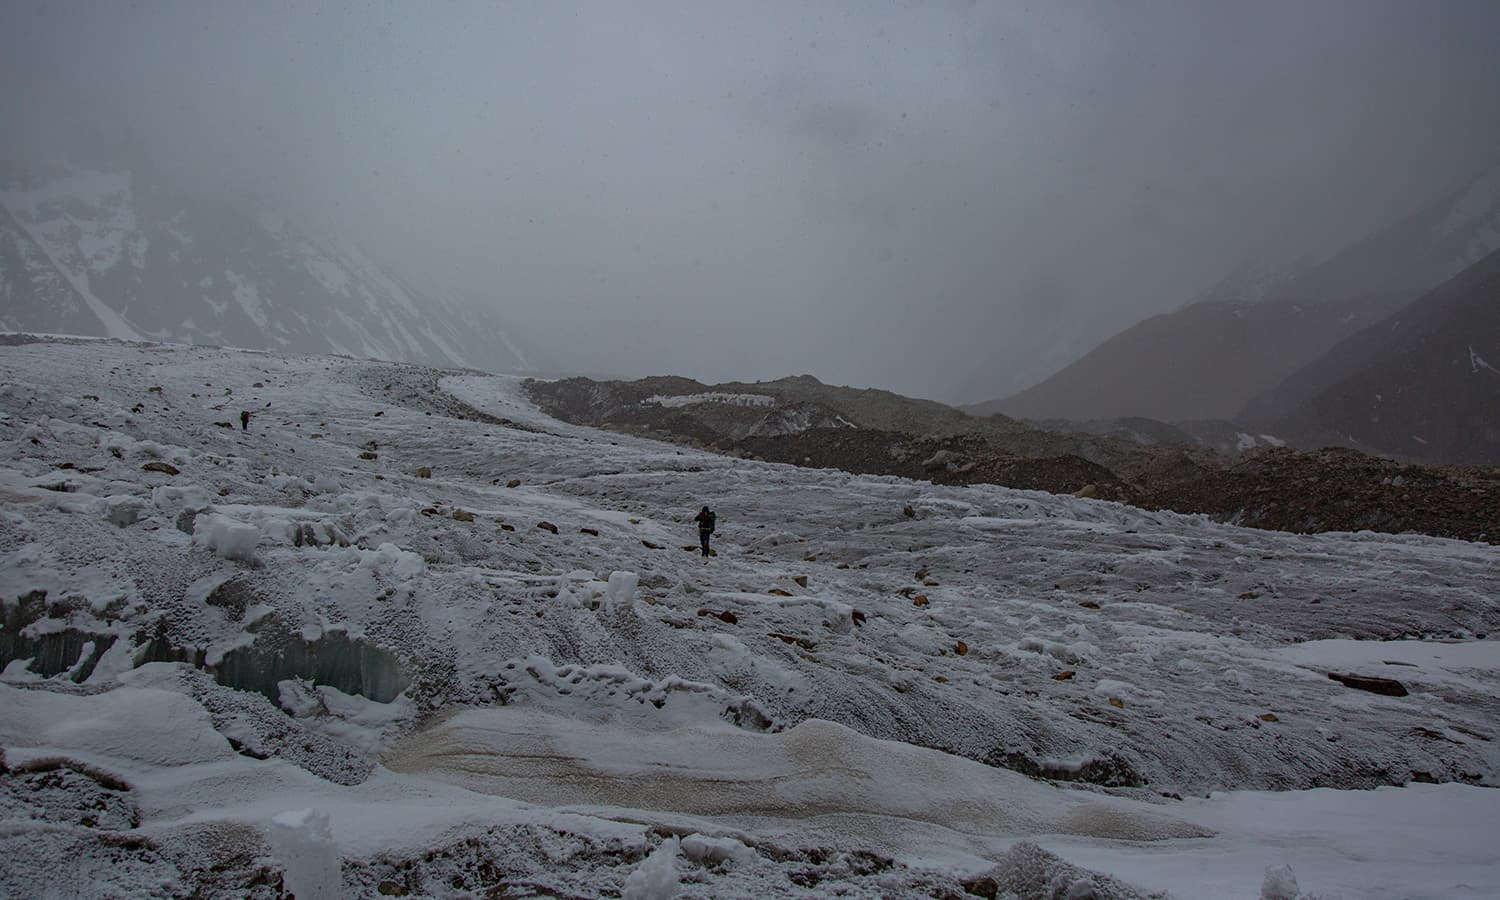 Trekking on the Upper Baltoro Glacier.